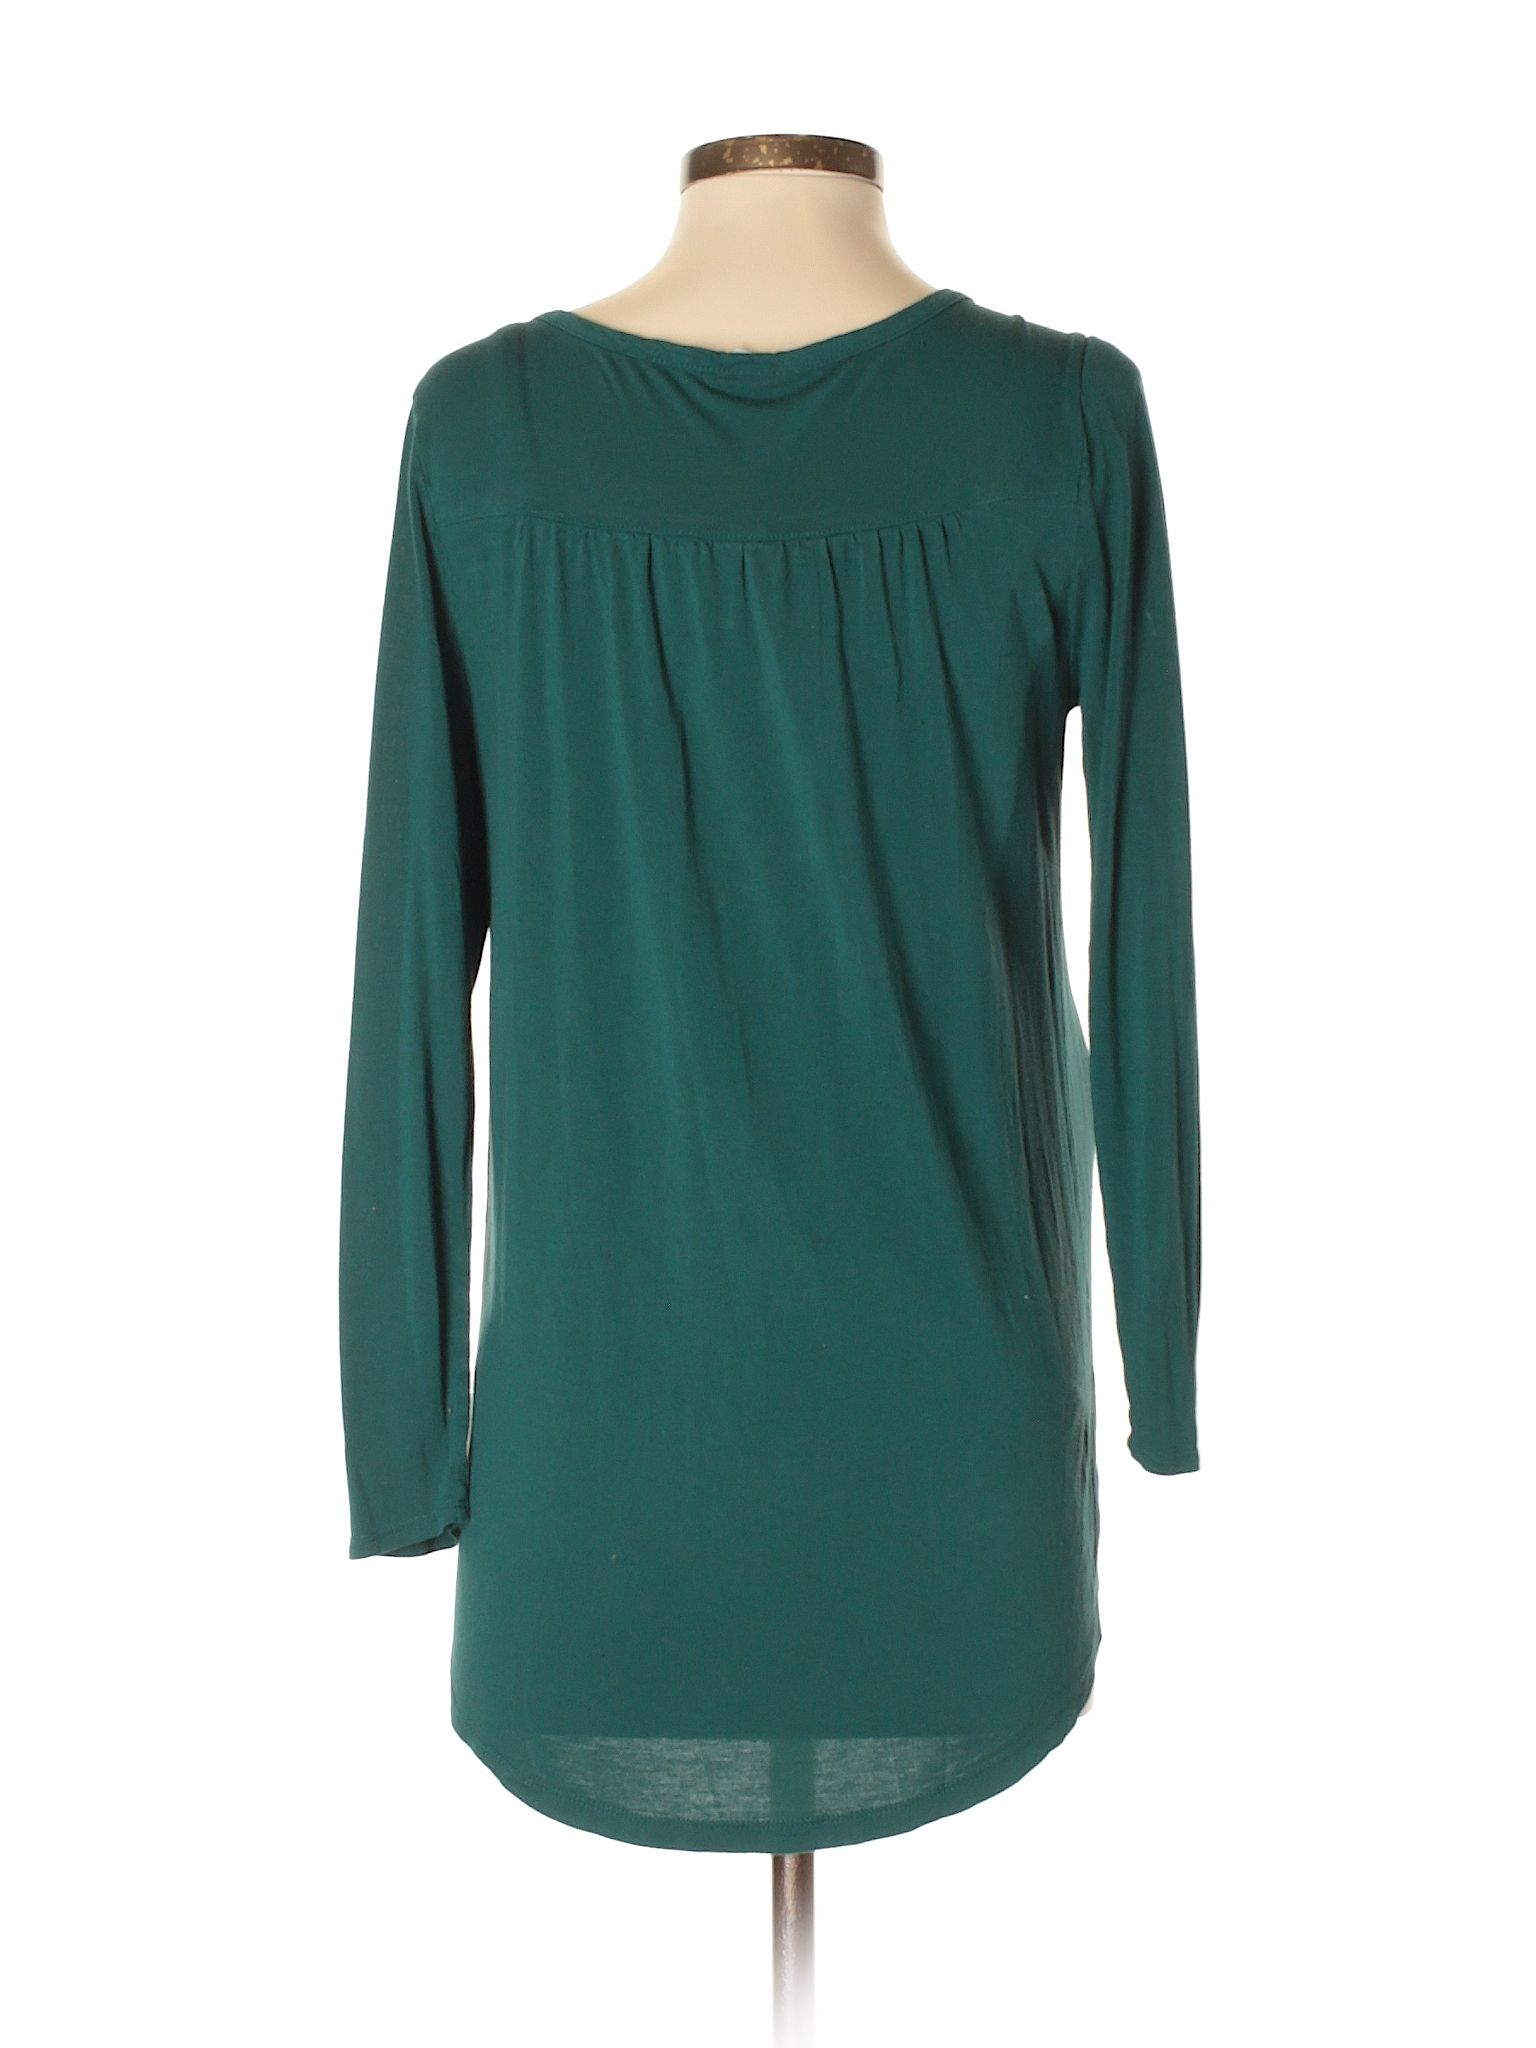 Old Navy Long Sleeve Henley Size 400 Teal Womens Tops